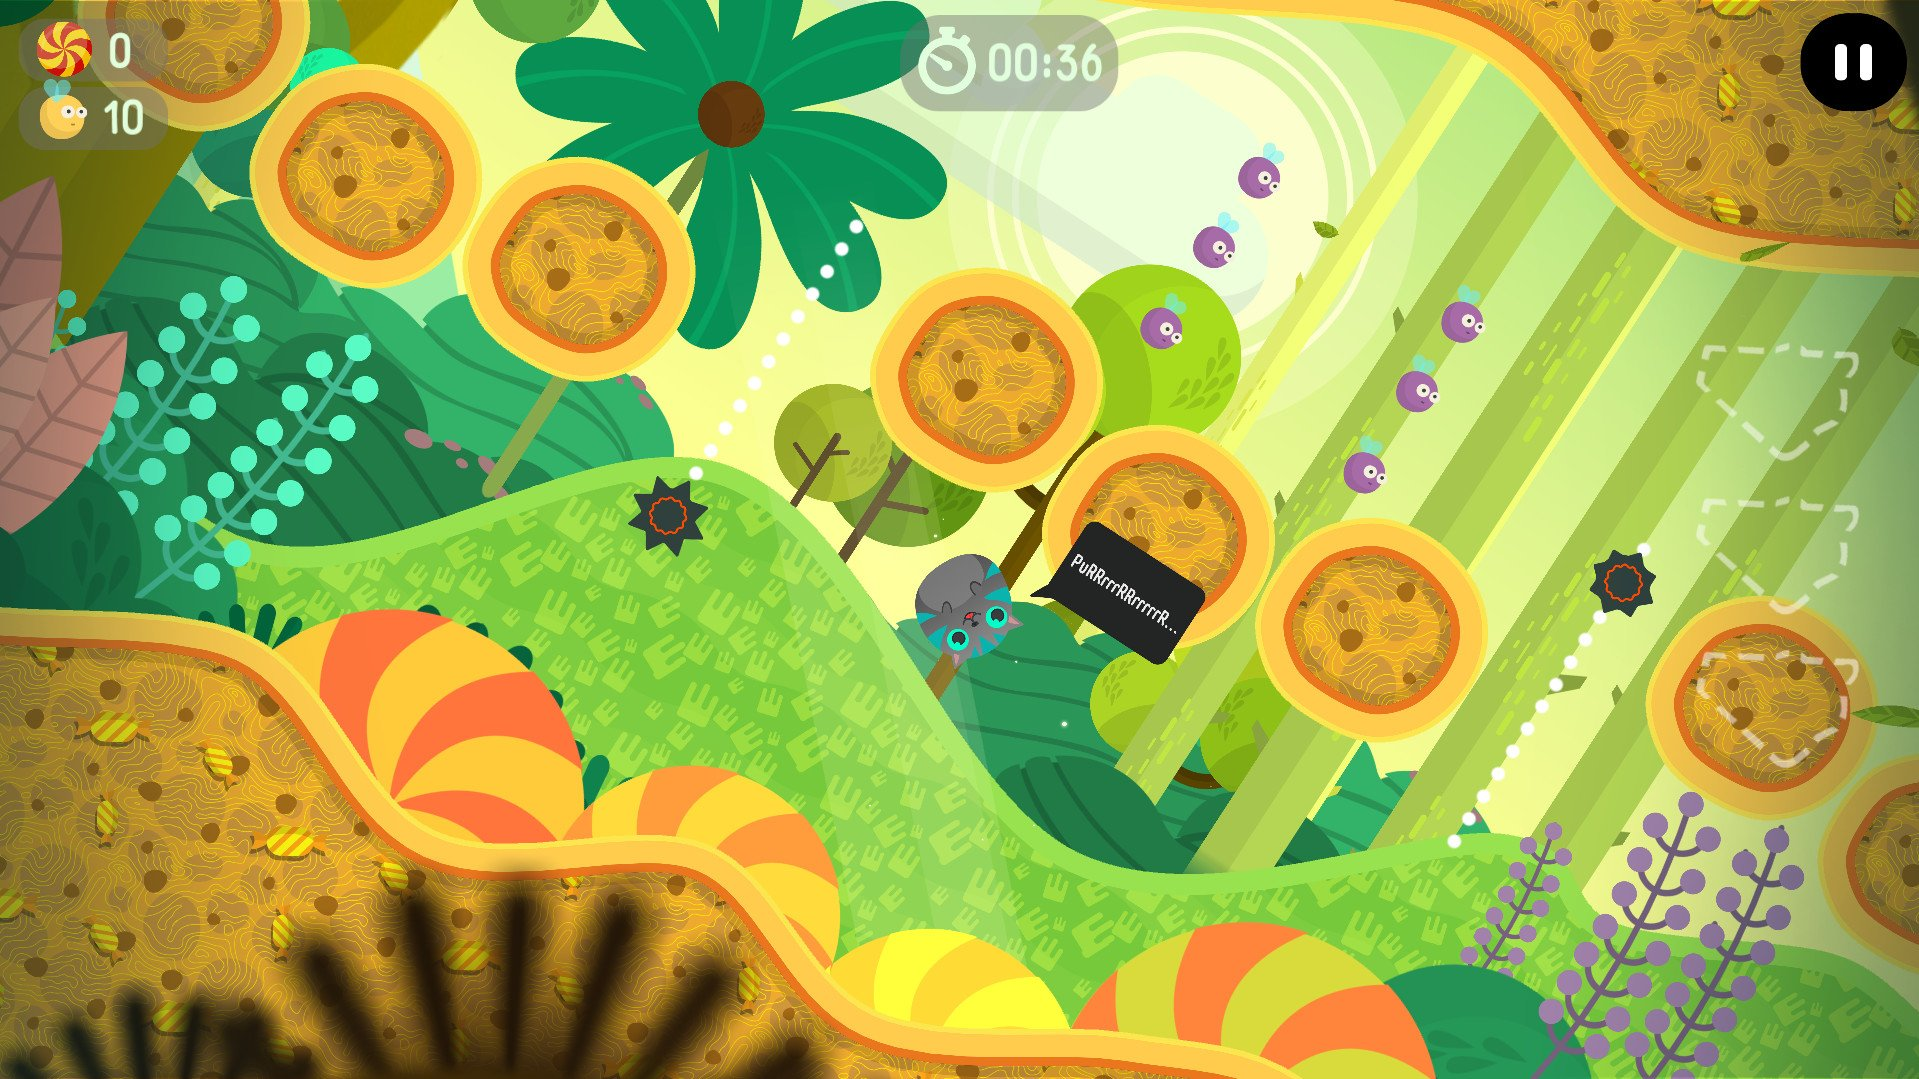 Help Mr. Whiskers eat his fill of dumplings in The Big Journey.